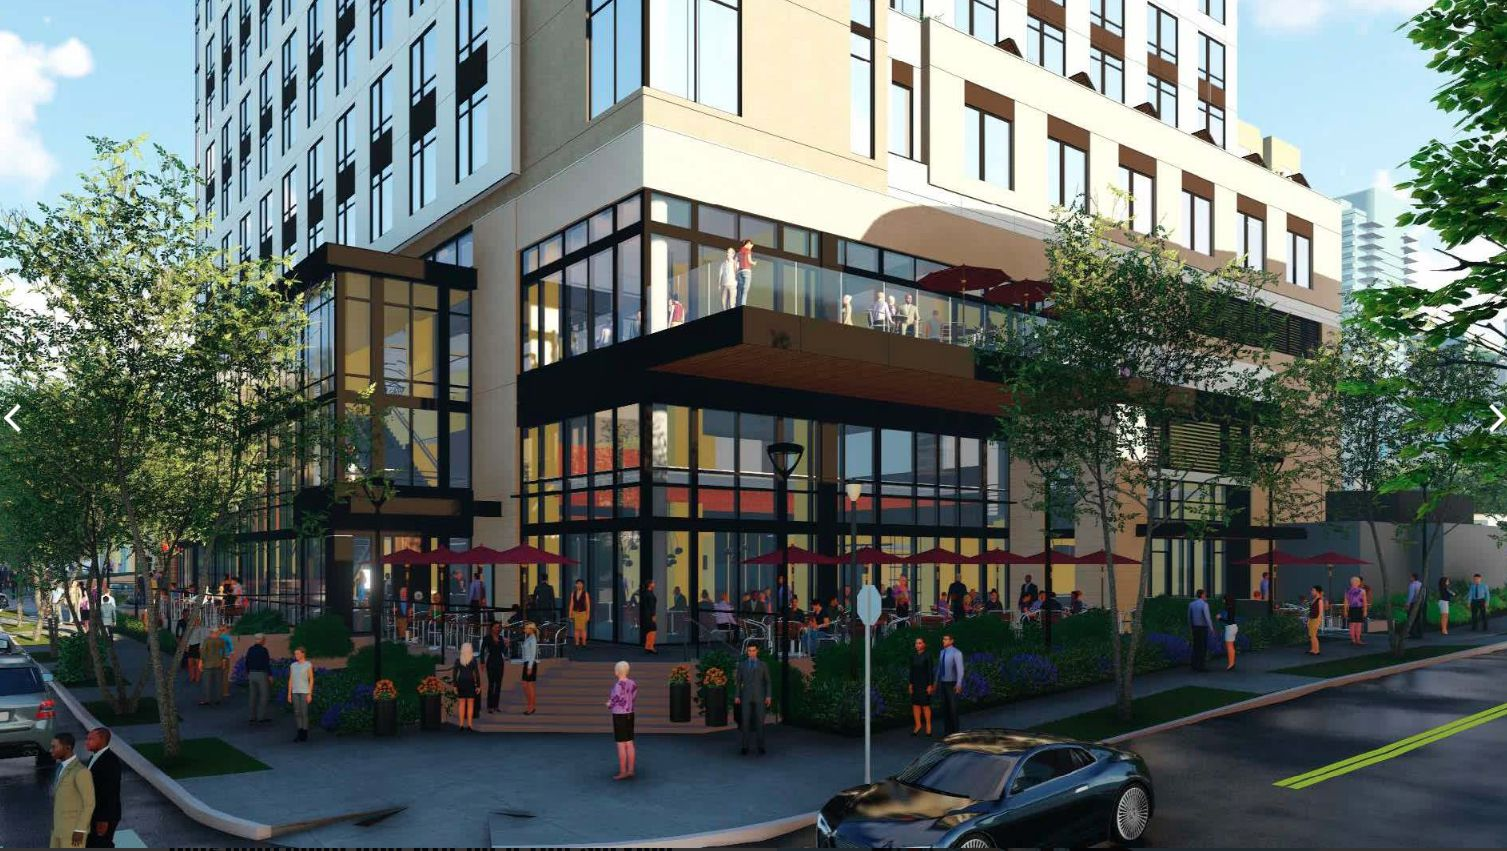 The new Marriott Hotel will be at Fairmount and Carlisle streets.